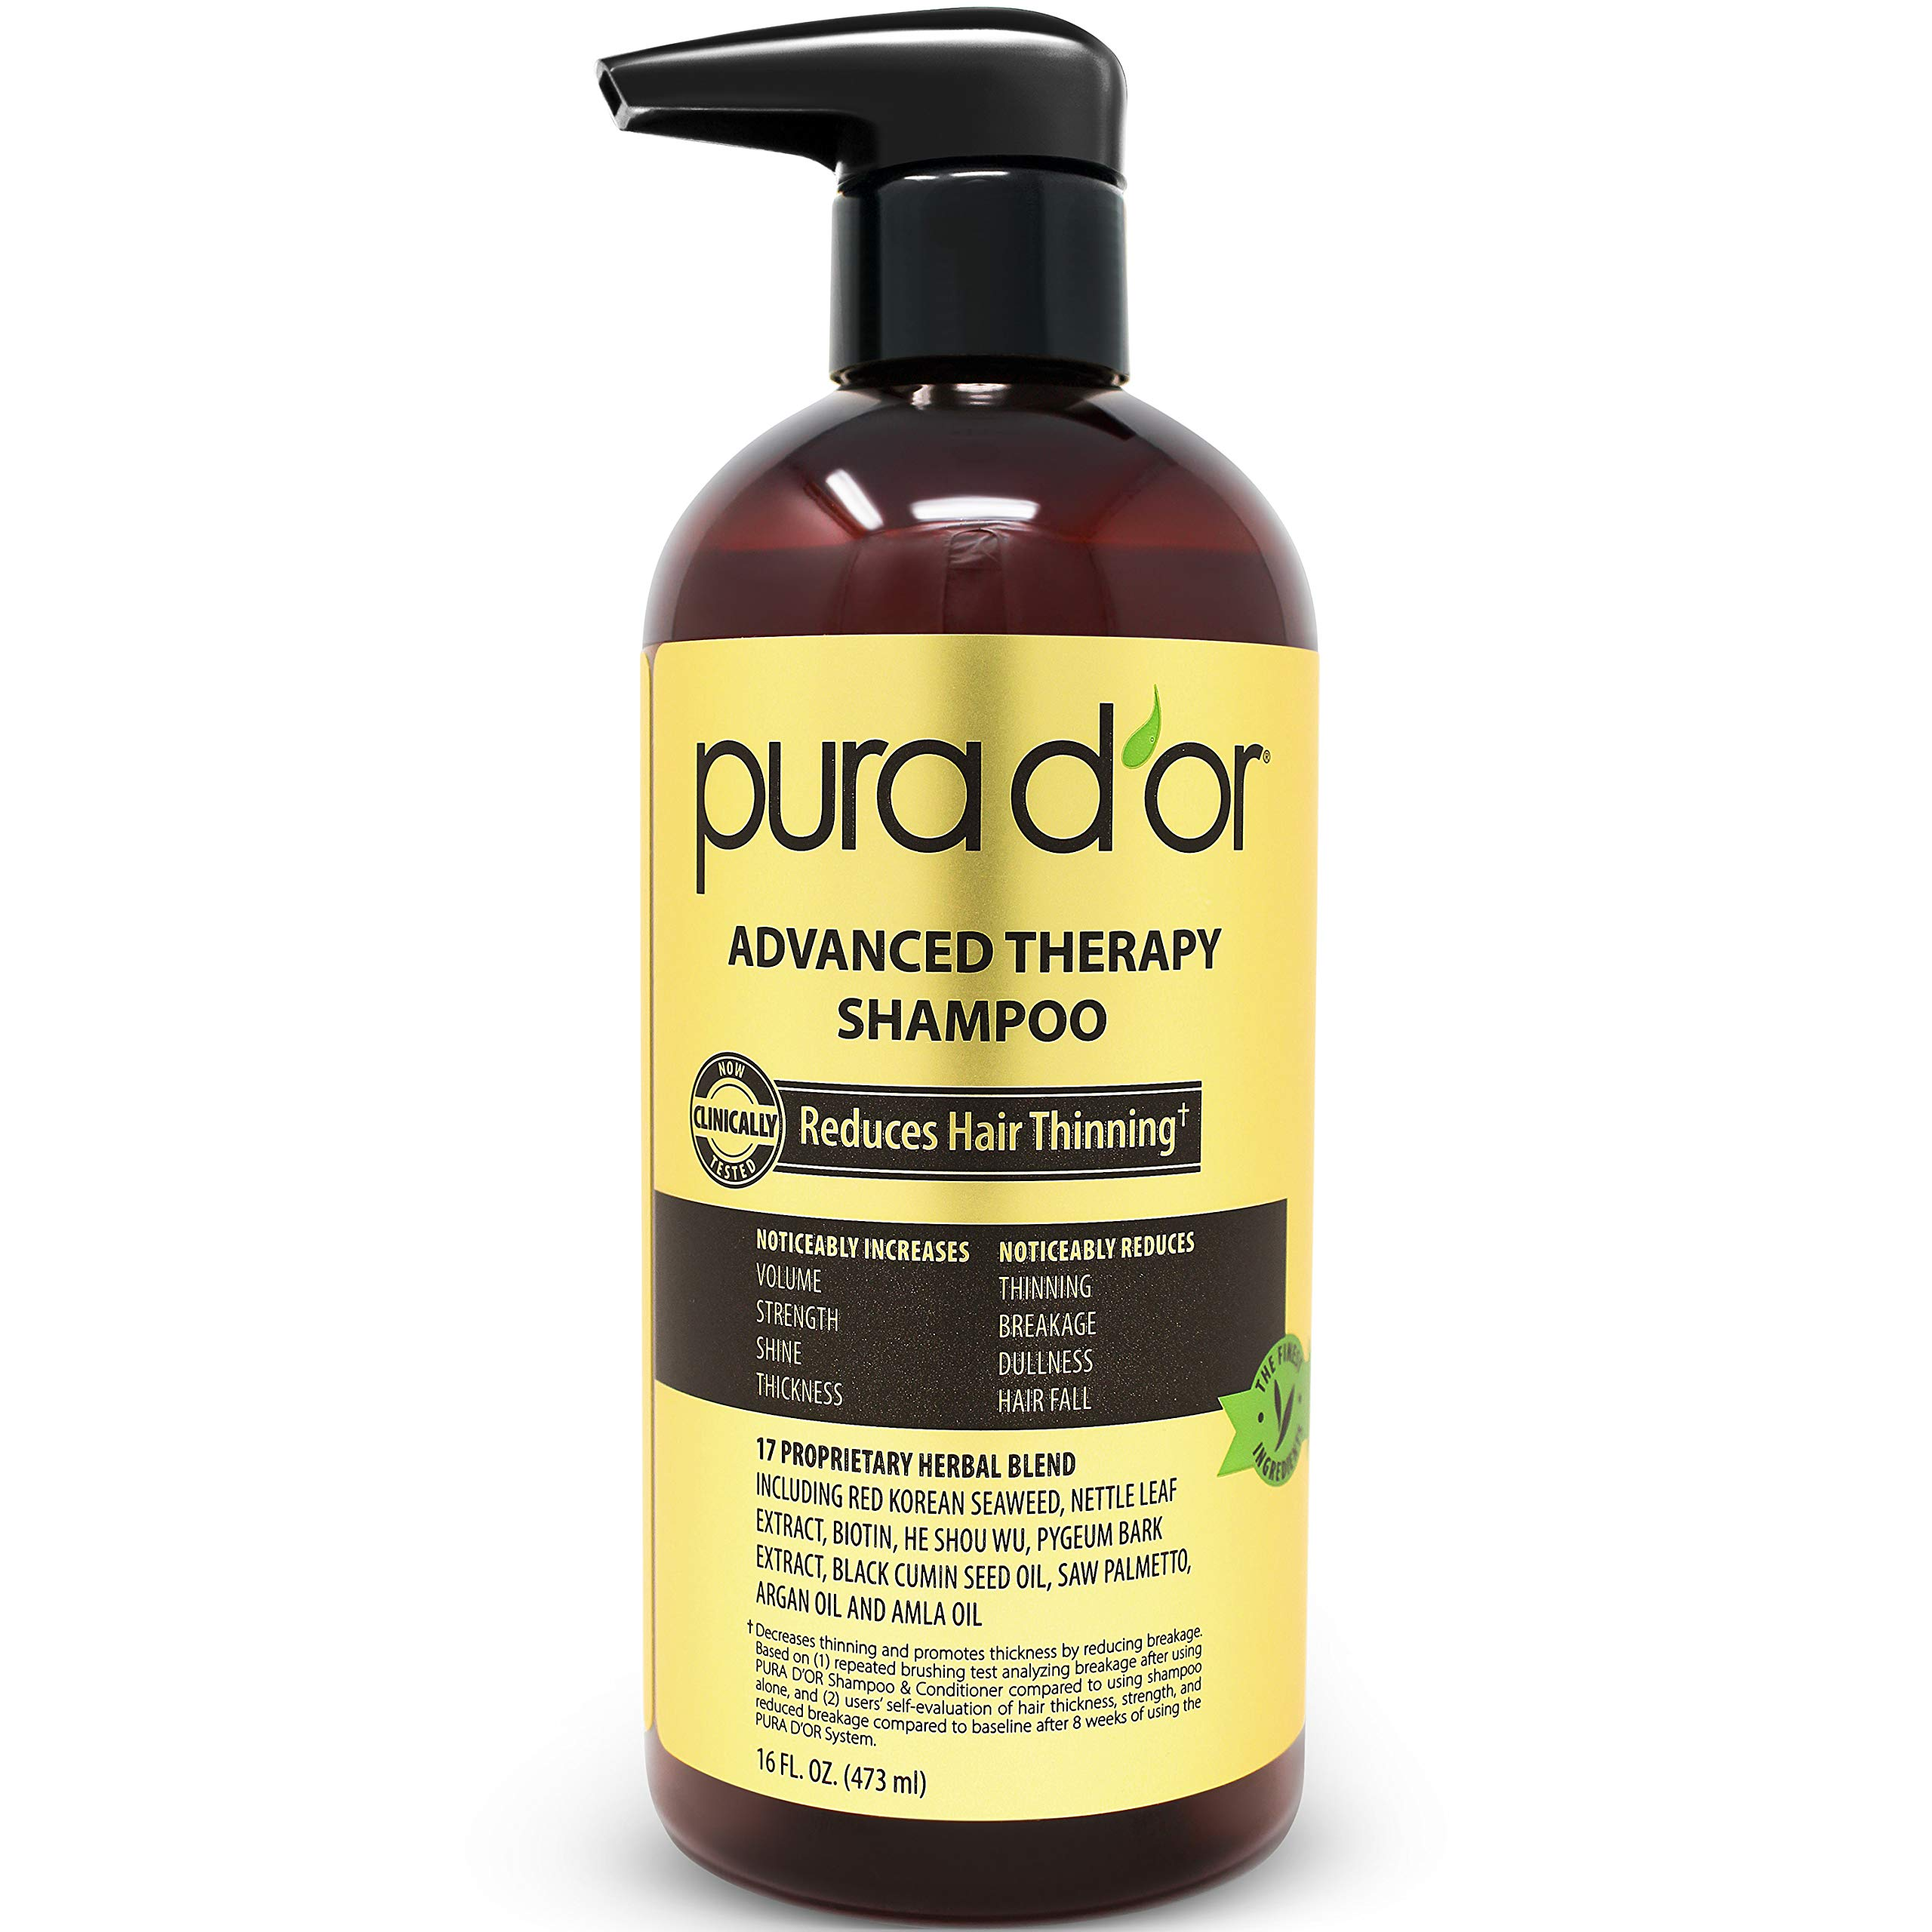 PURA D'OR Advanced Therapy Shampoo Reduces Hair Thinning & Increases Volume, Sulfate Free, Biotin Shampoo Infused with Argan Oil, Aloe Vera for All Hair Types, Men & Women,16 Fl Oz by PURA D'OR